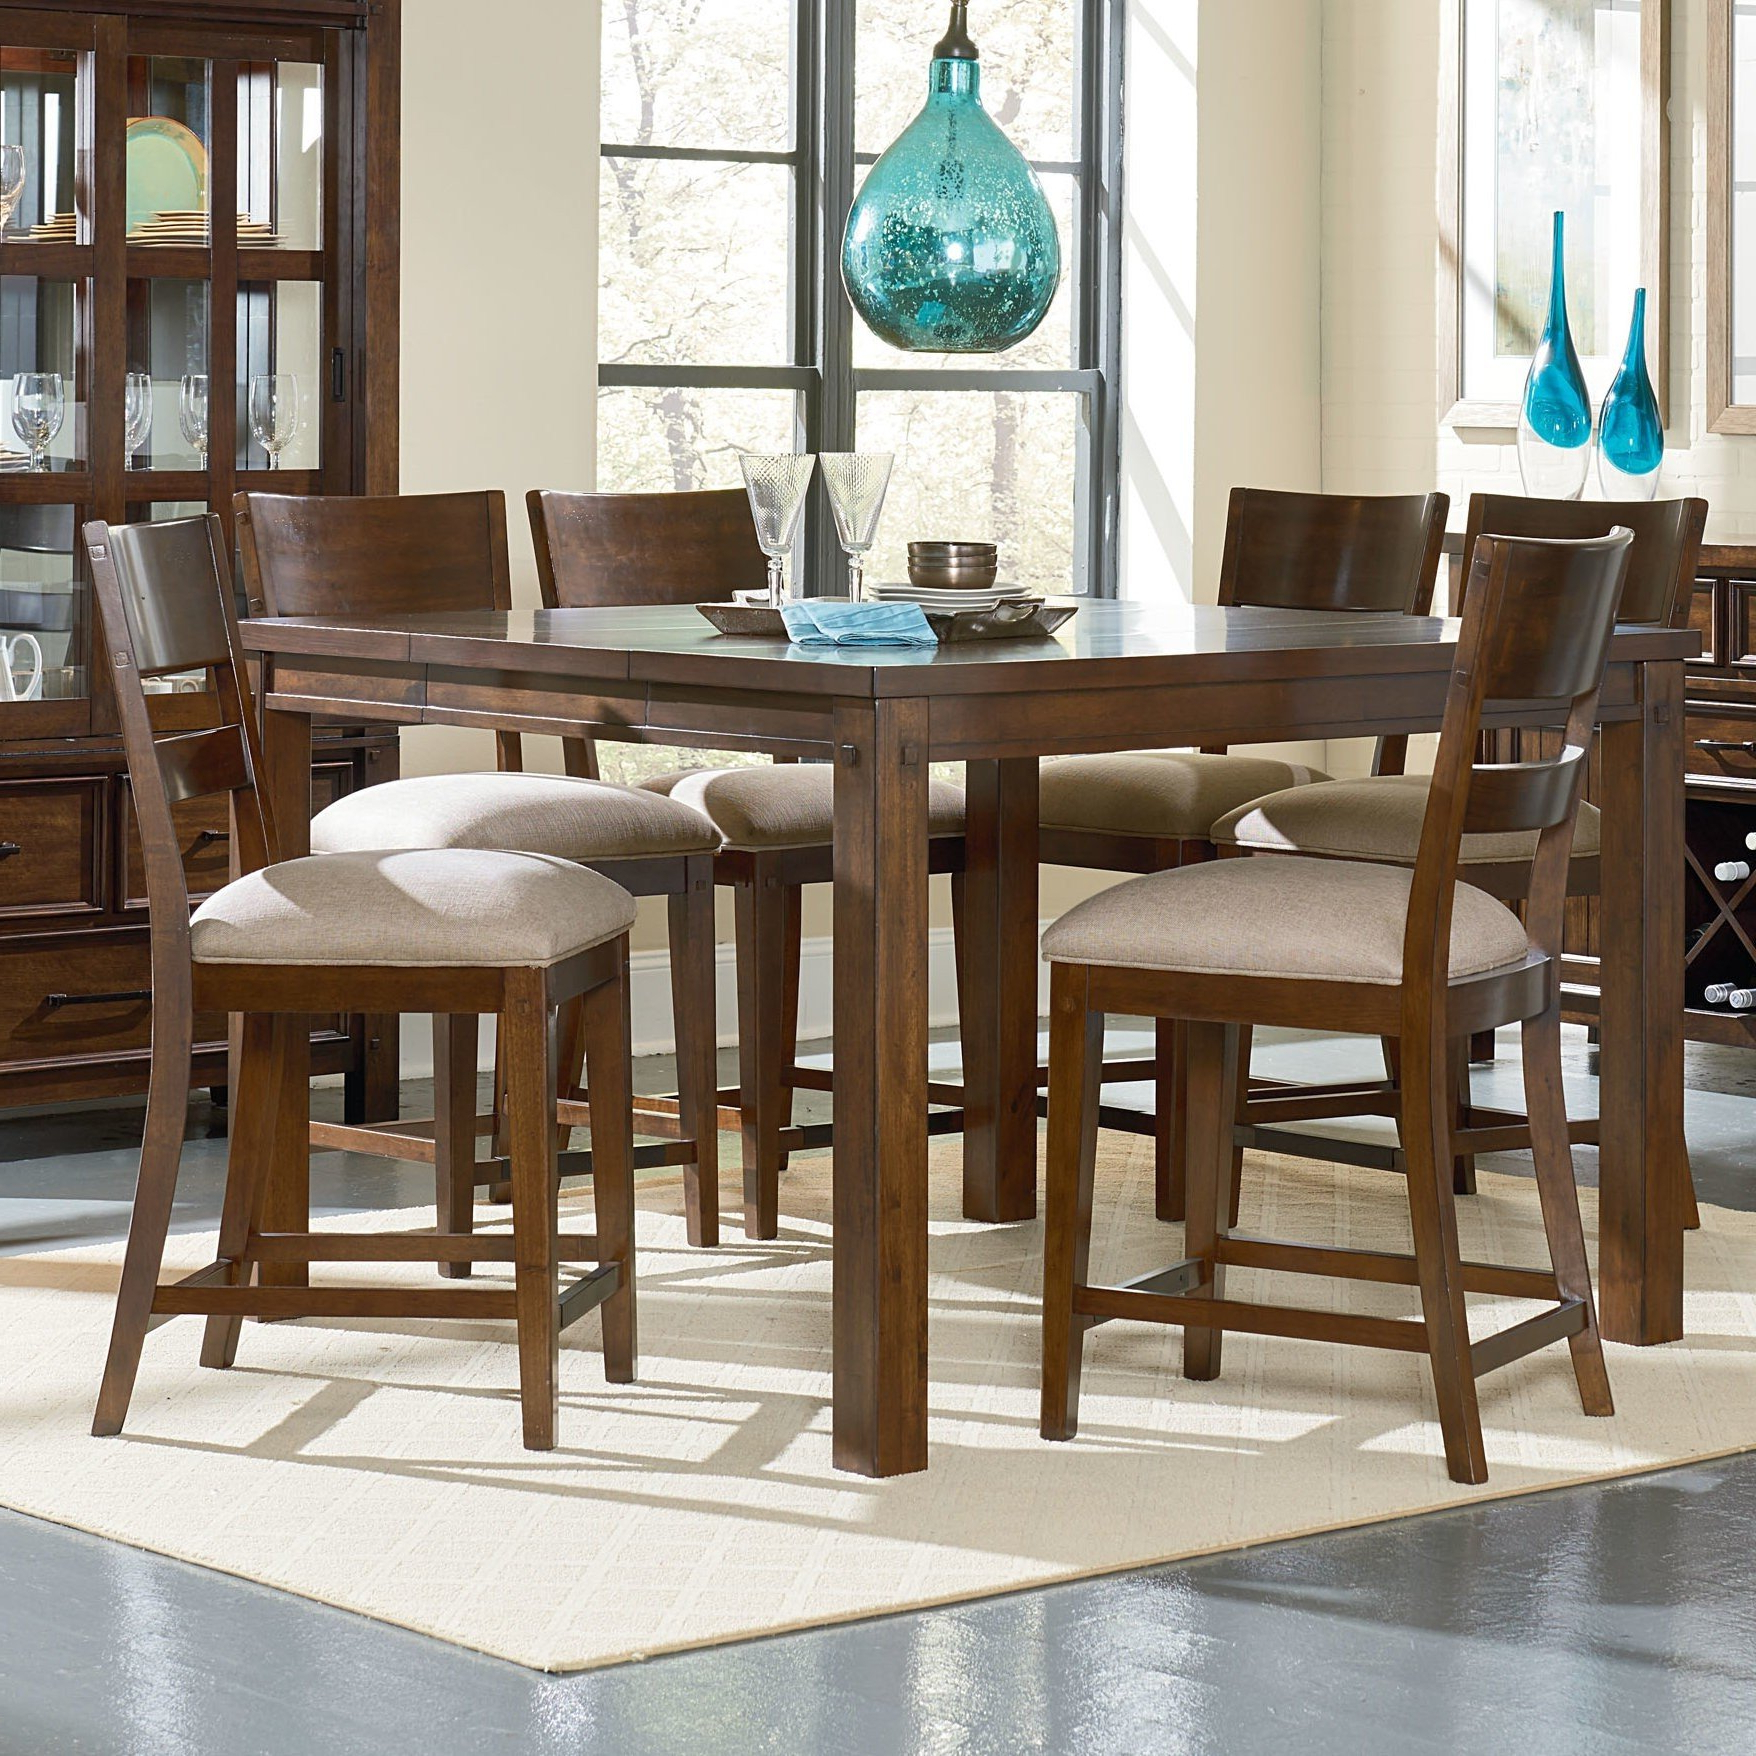 Contemporary 4 Seating Square Dining Tables Throughout Well Liked 50+ Square Dining Table For 6 You'll Love In 2020 – Visual Hunt (View 12 of 25)